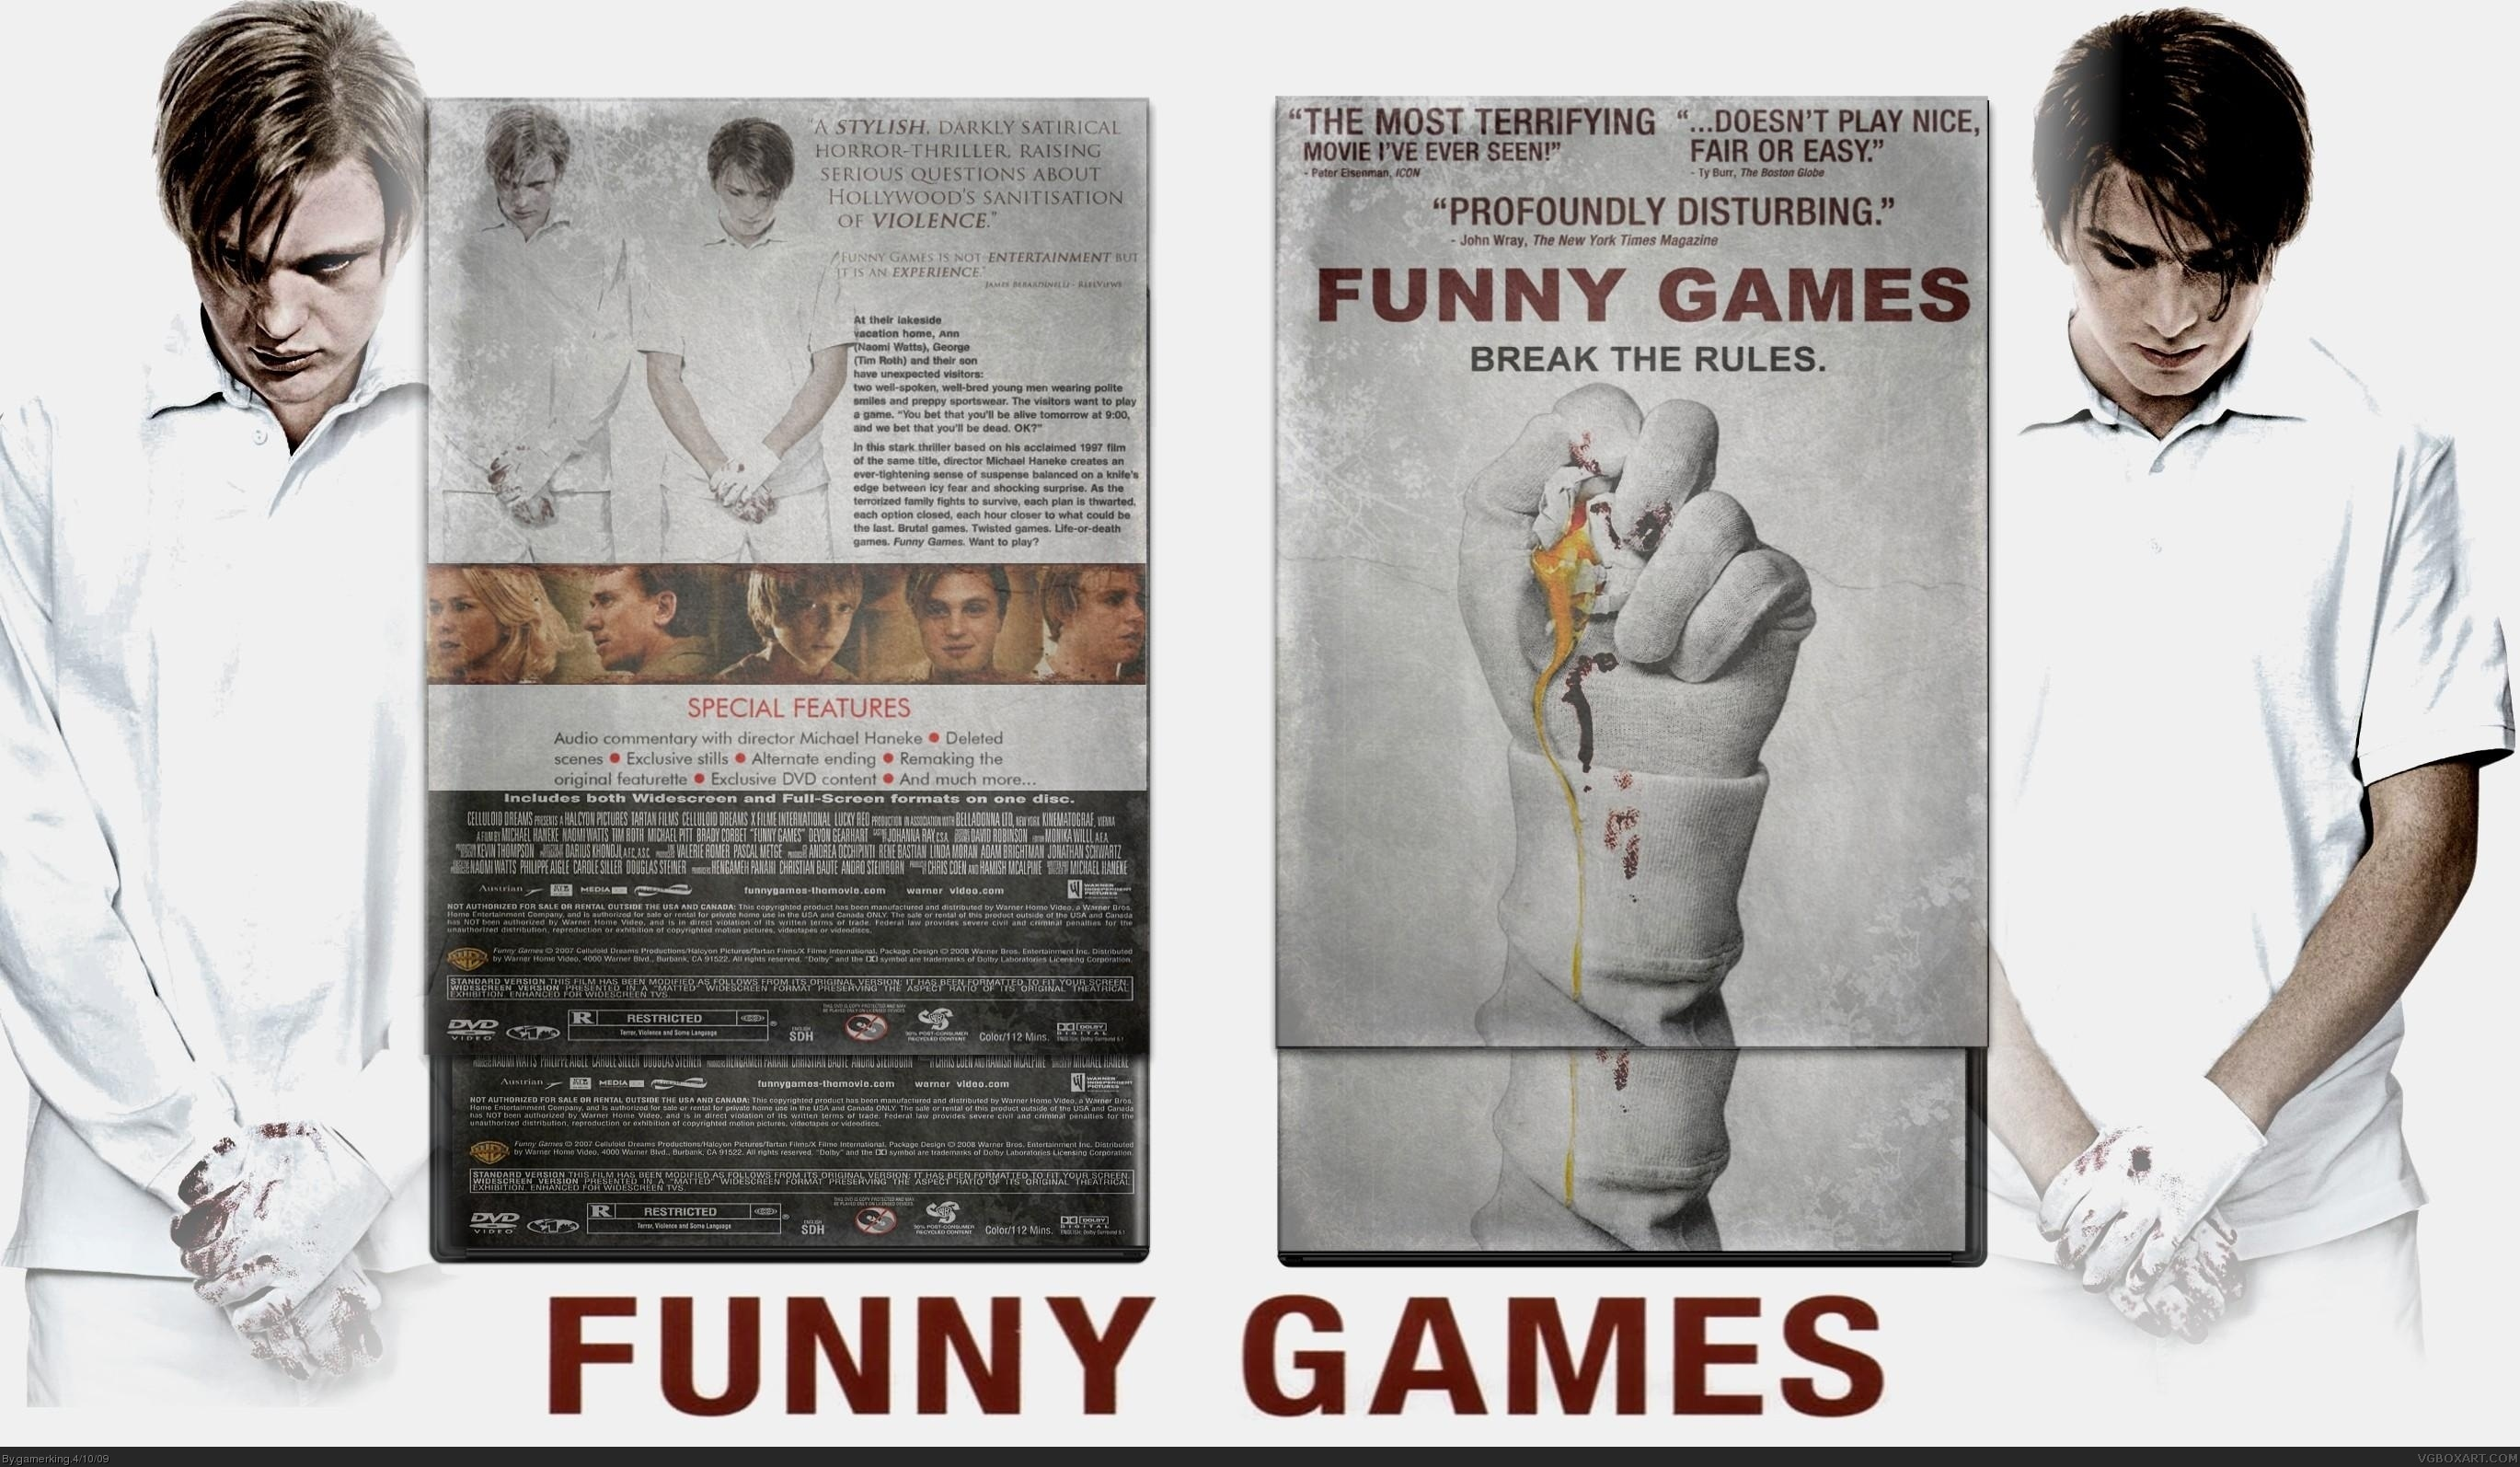 Funny games box cover comments